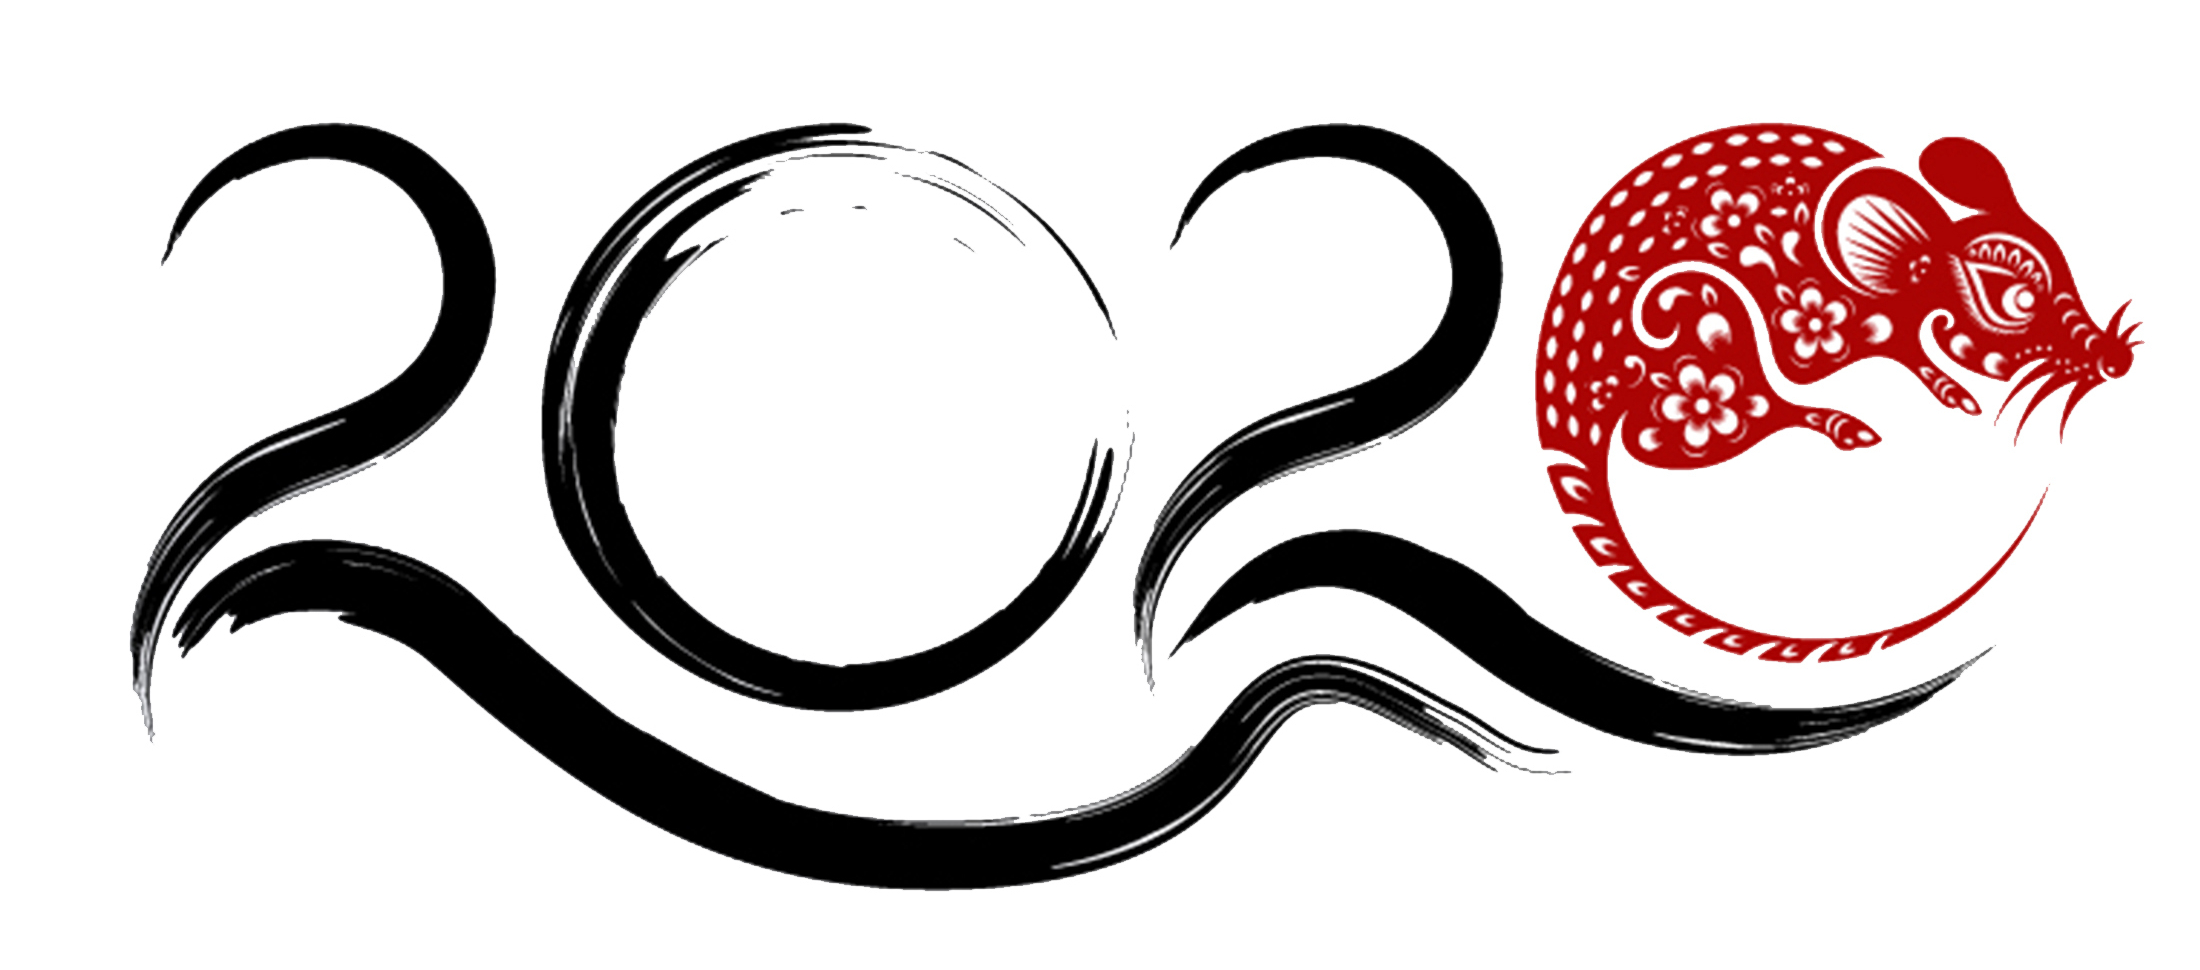 Logo depicting the 2020 Lunar New Year, Year of the Rat.